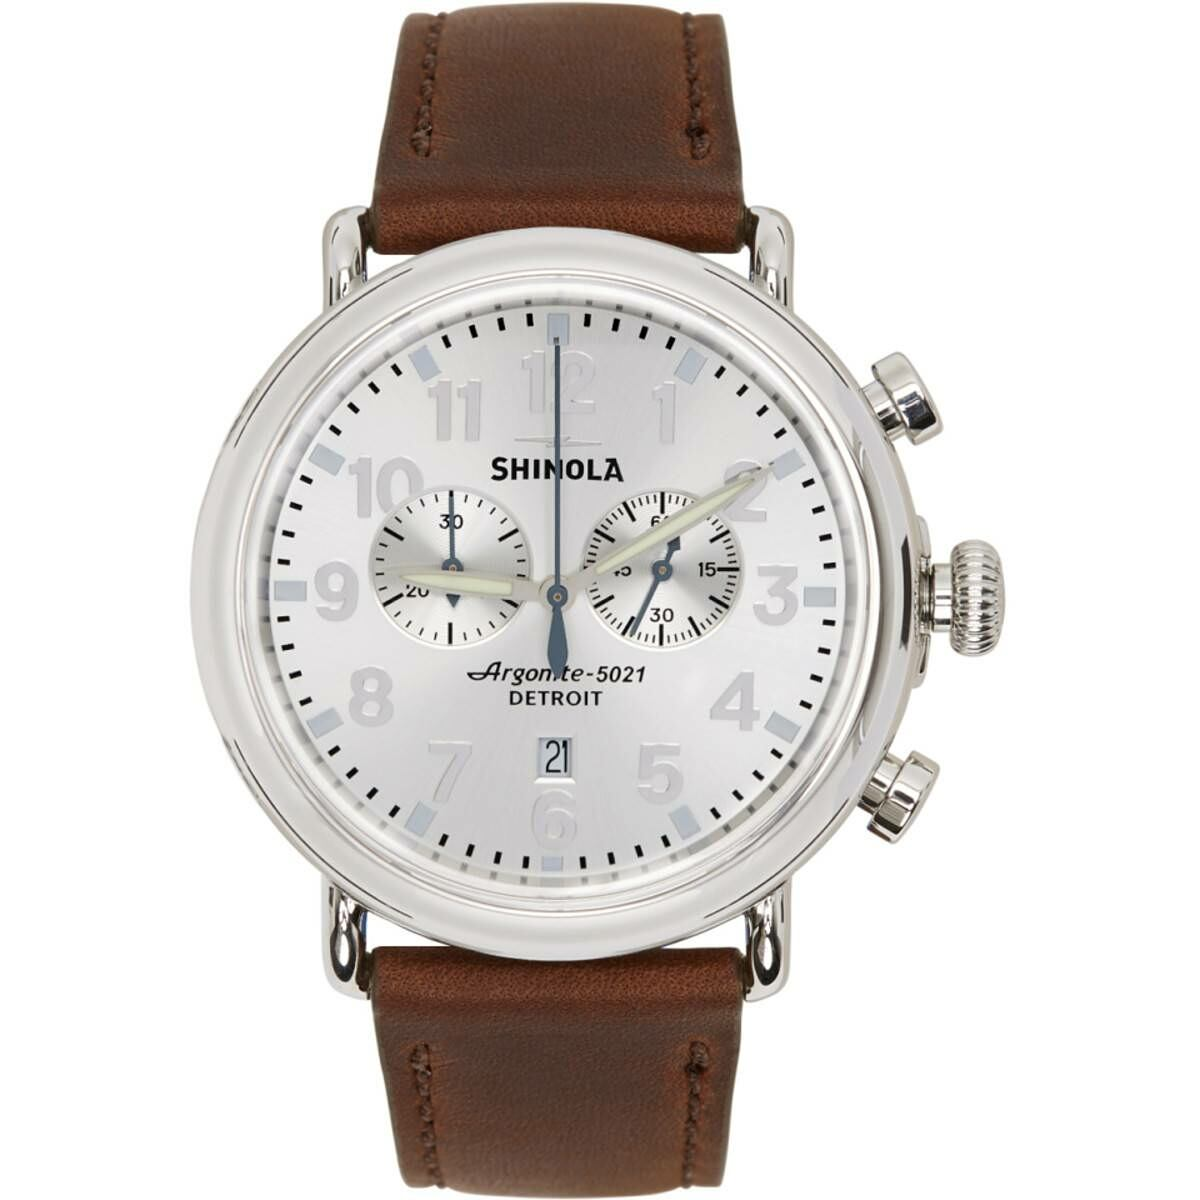 Shinola Silver and Brown The Runwell 47mm Watch Ssense USA MEN Men ACCESSORIES Mens WATCHES